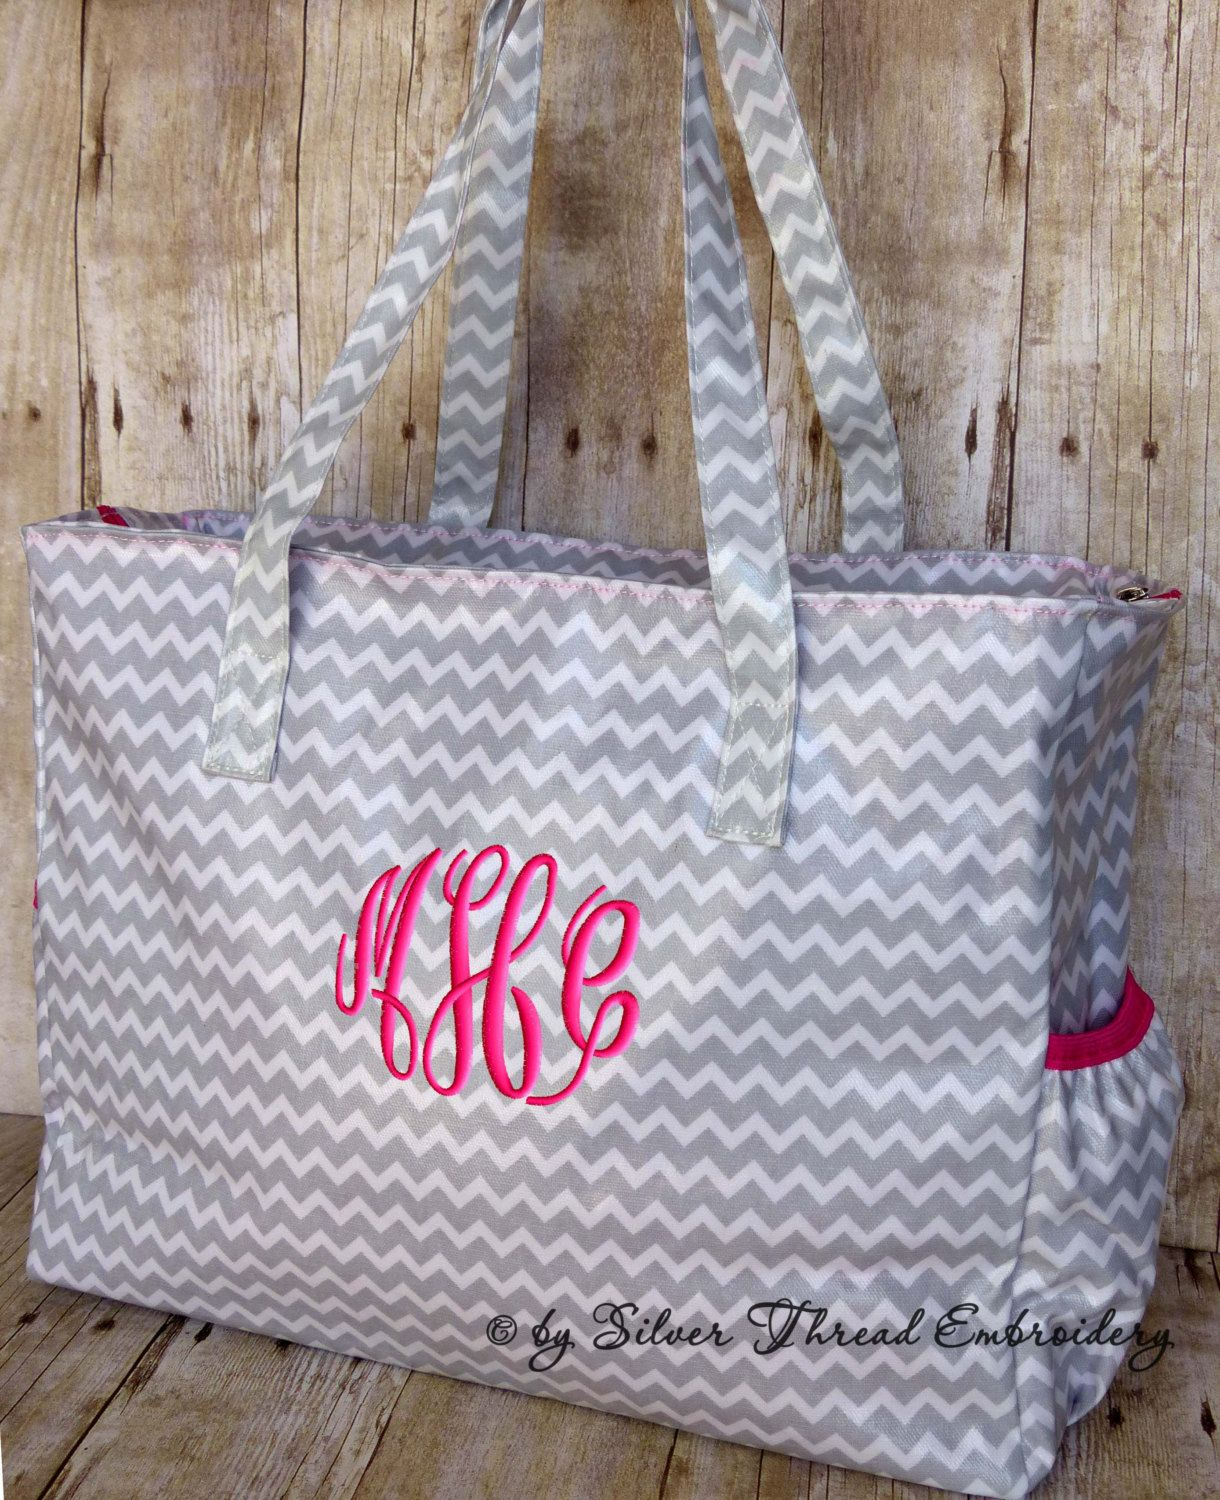 Personalized diaper bag chevron gray hot pink by parsik93 on etsy personalized diaper bag chevron gray hot pink monogrammed on etsy sold nr all kinds of louis vuittons bags here nice price for your holiday gifts negle Image collections